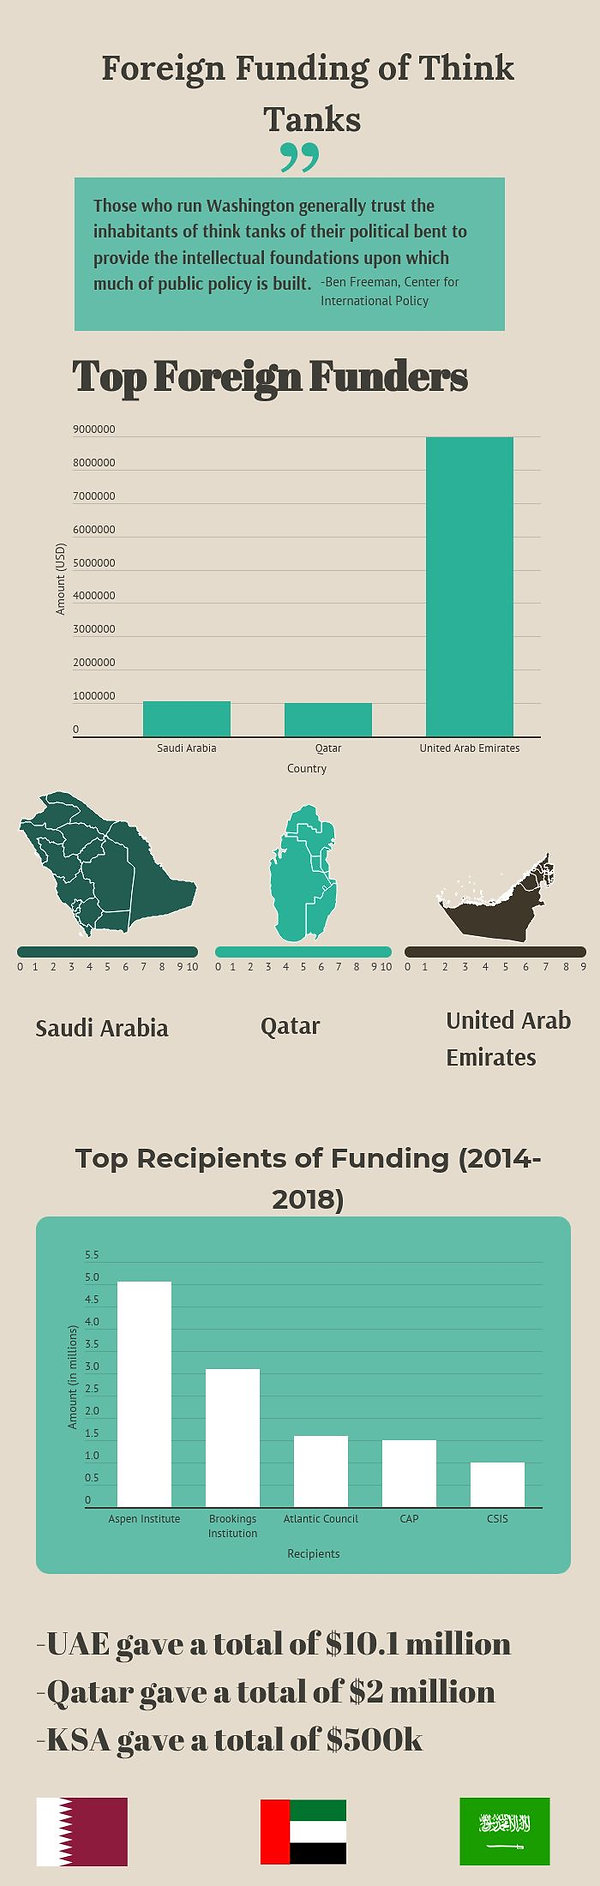 think-tank-funding-by-country (1).jpg